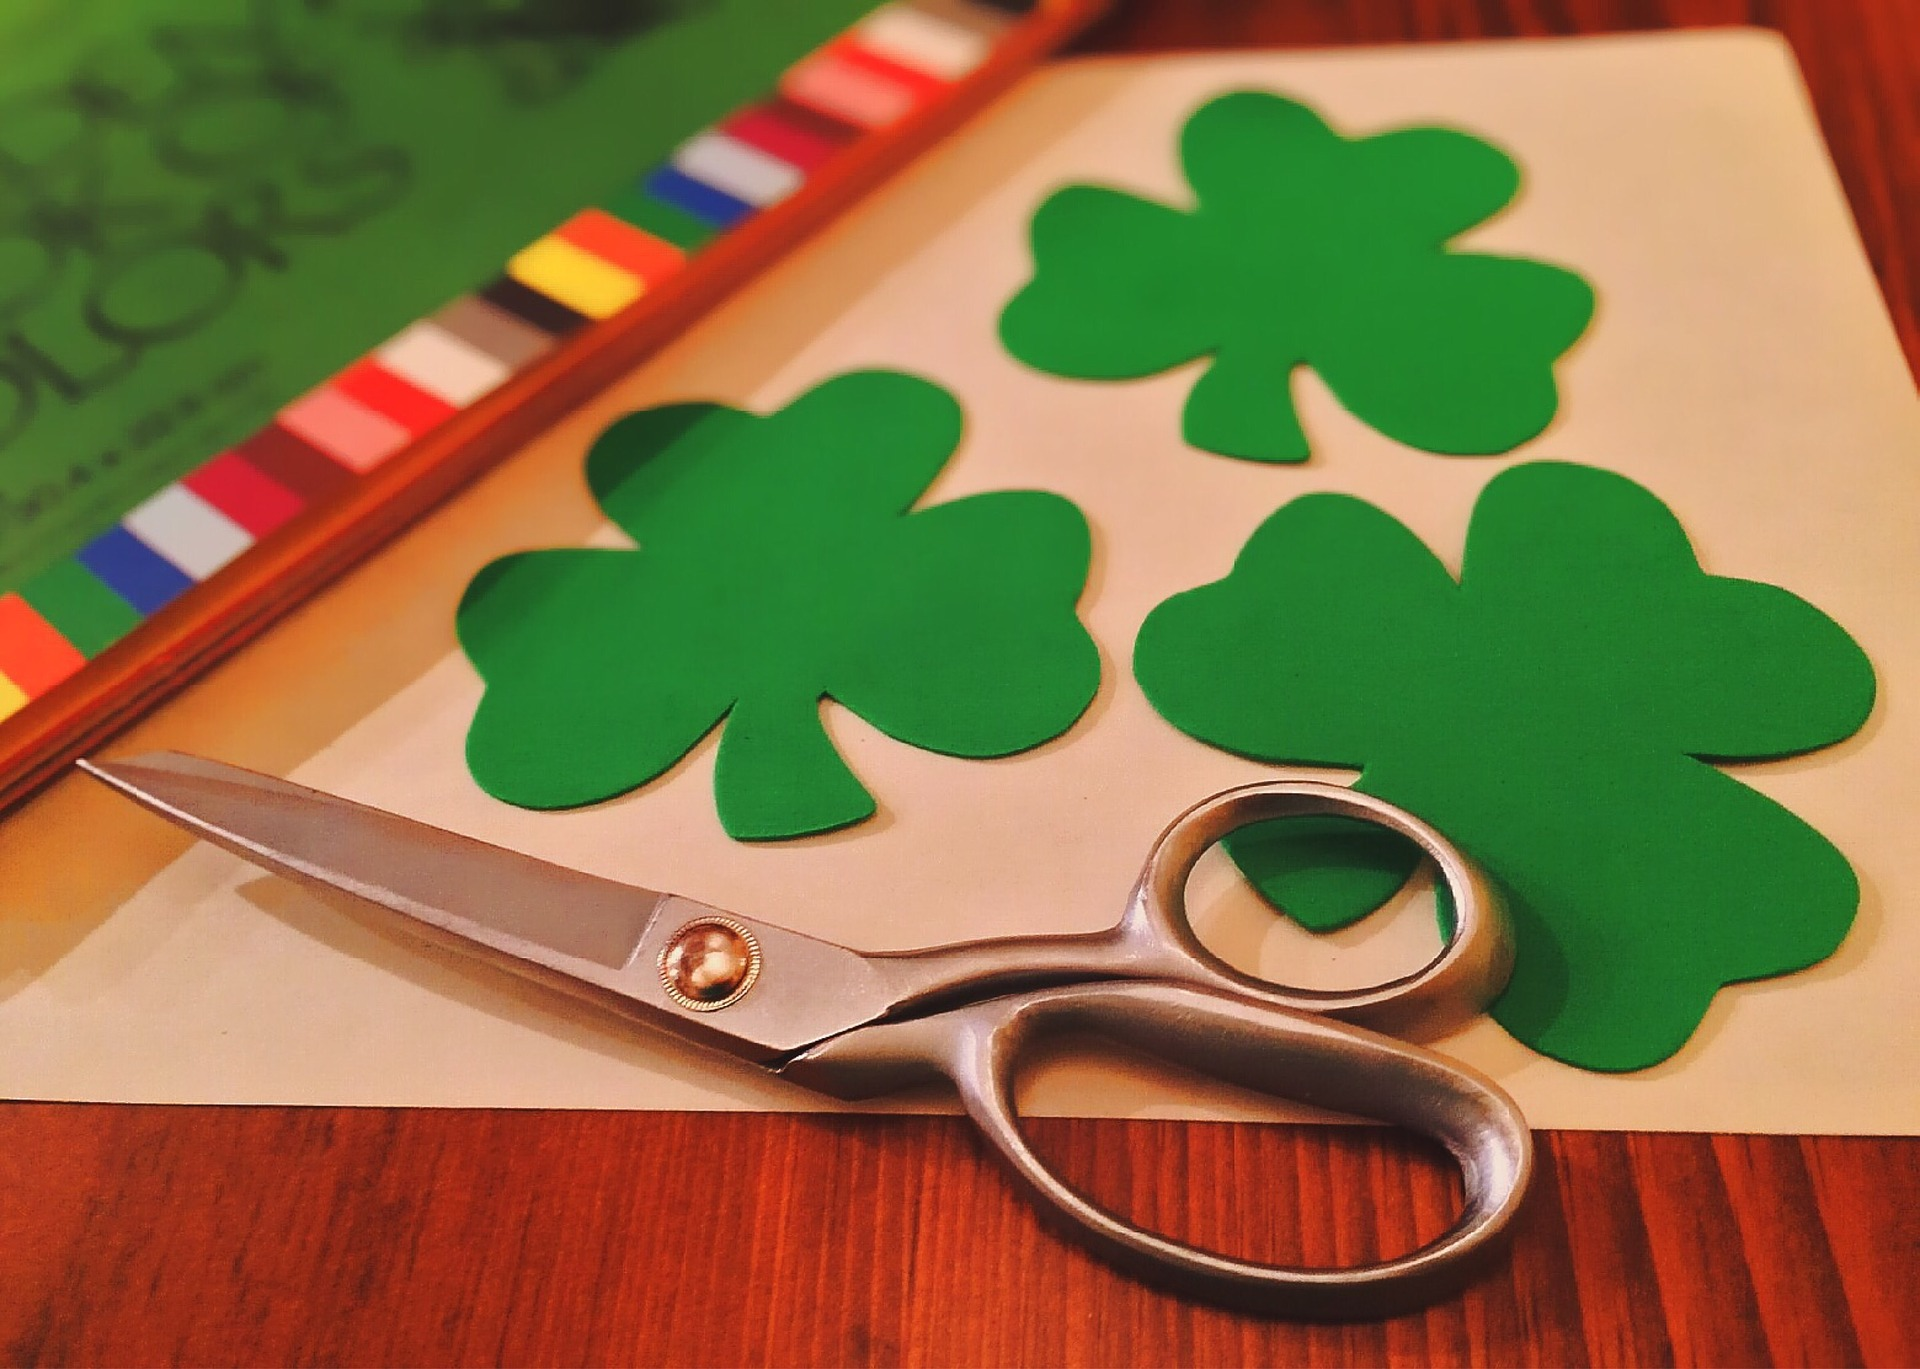 Family cutting together crafts at St Patricks festivities with events in Branson Missouri